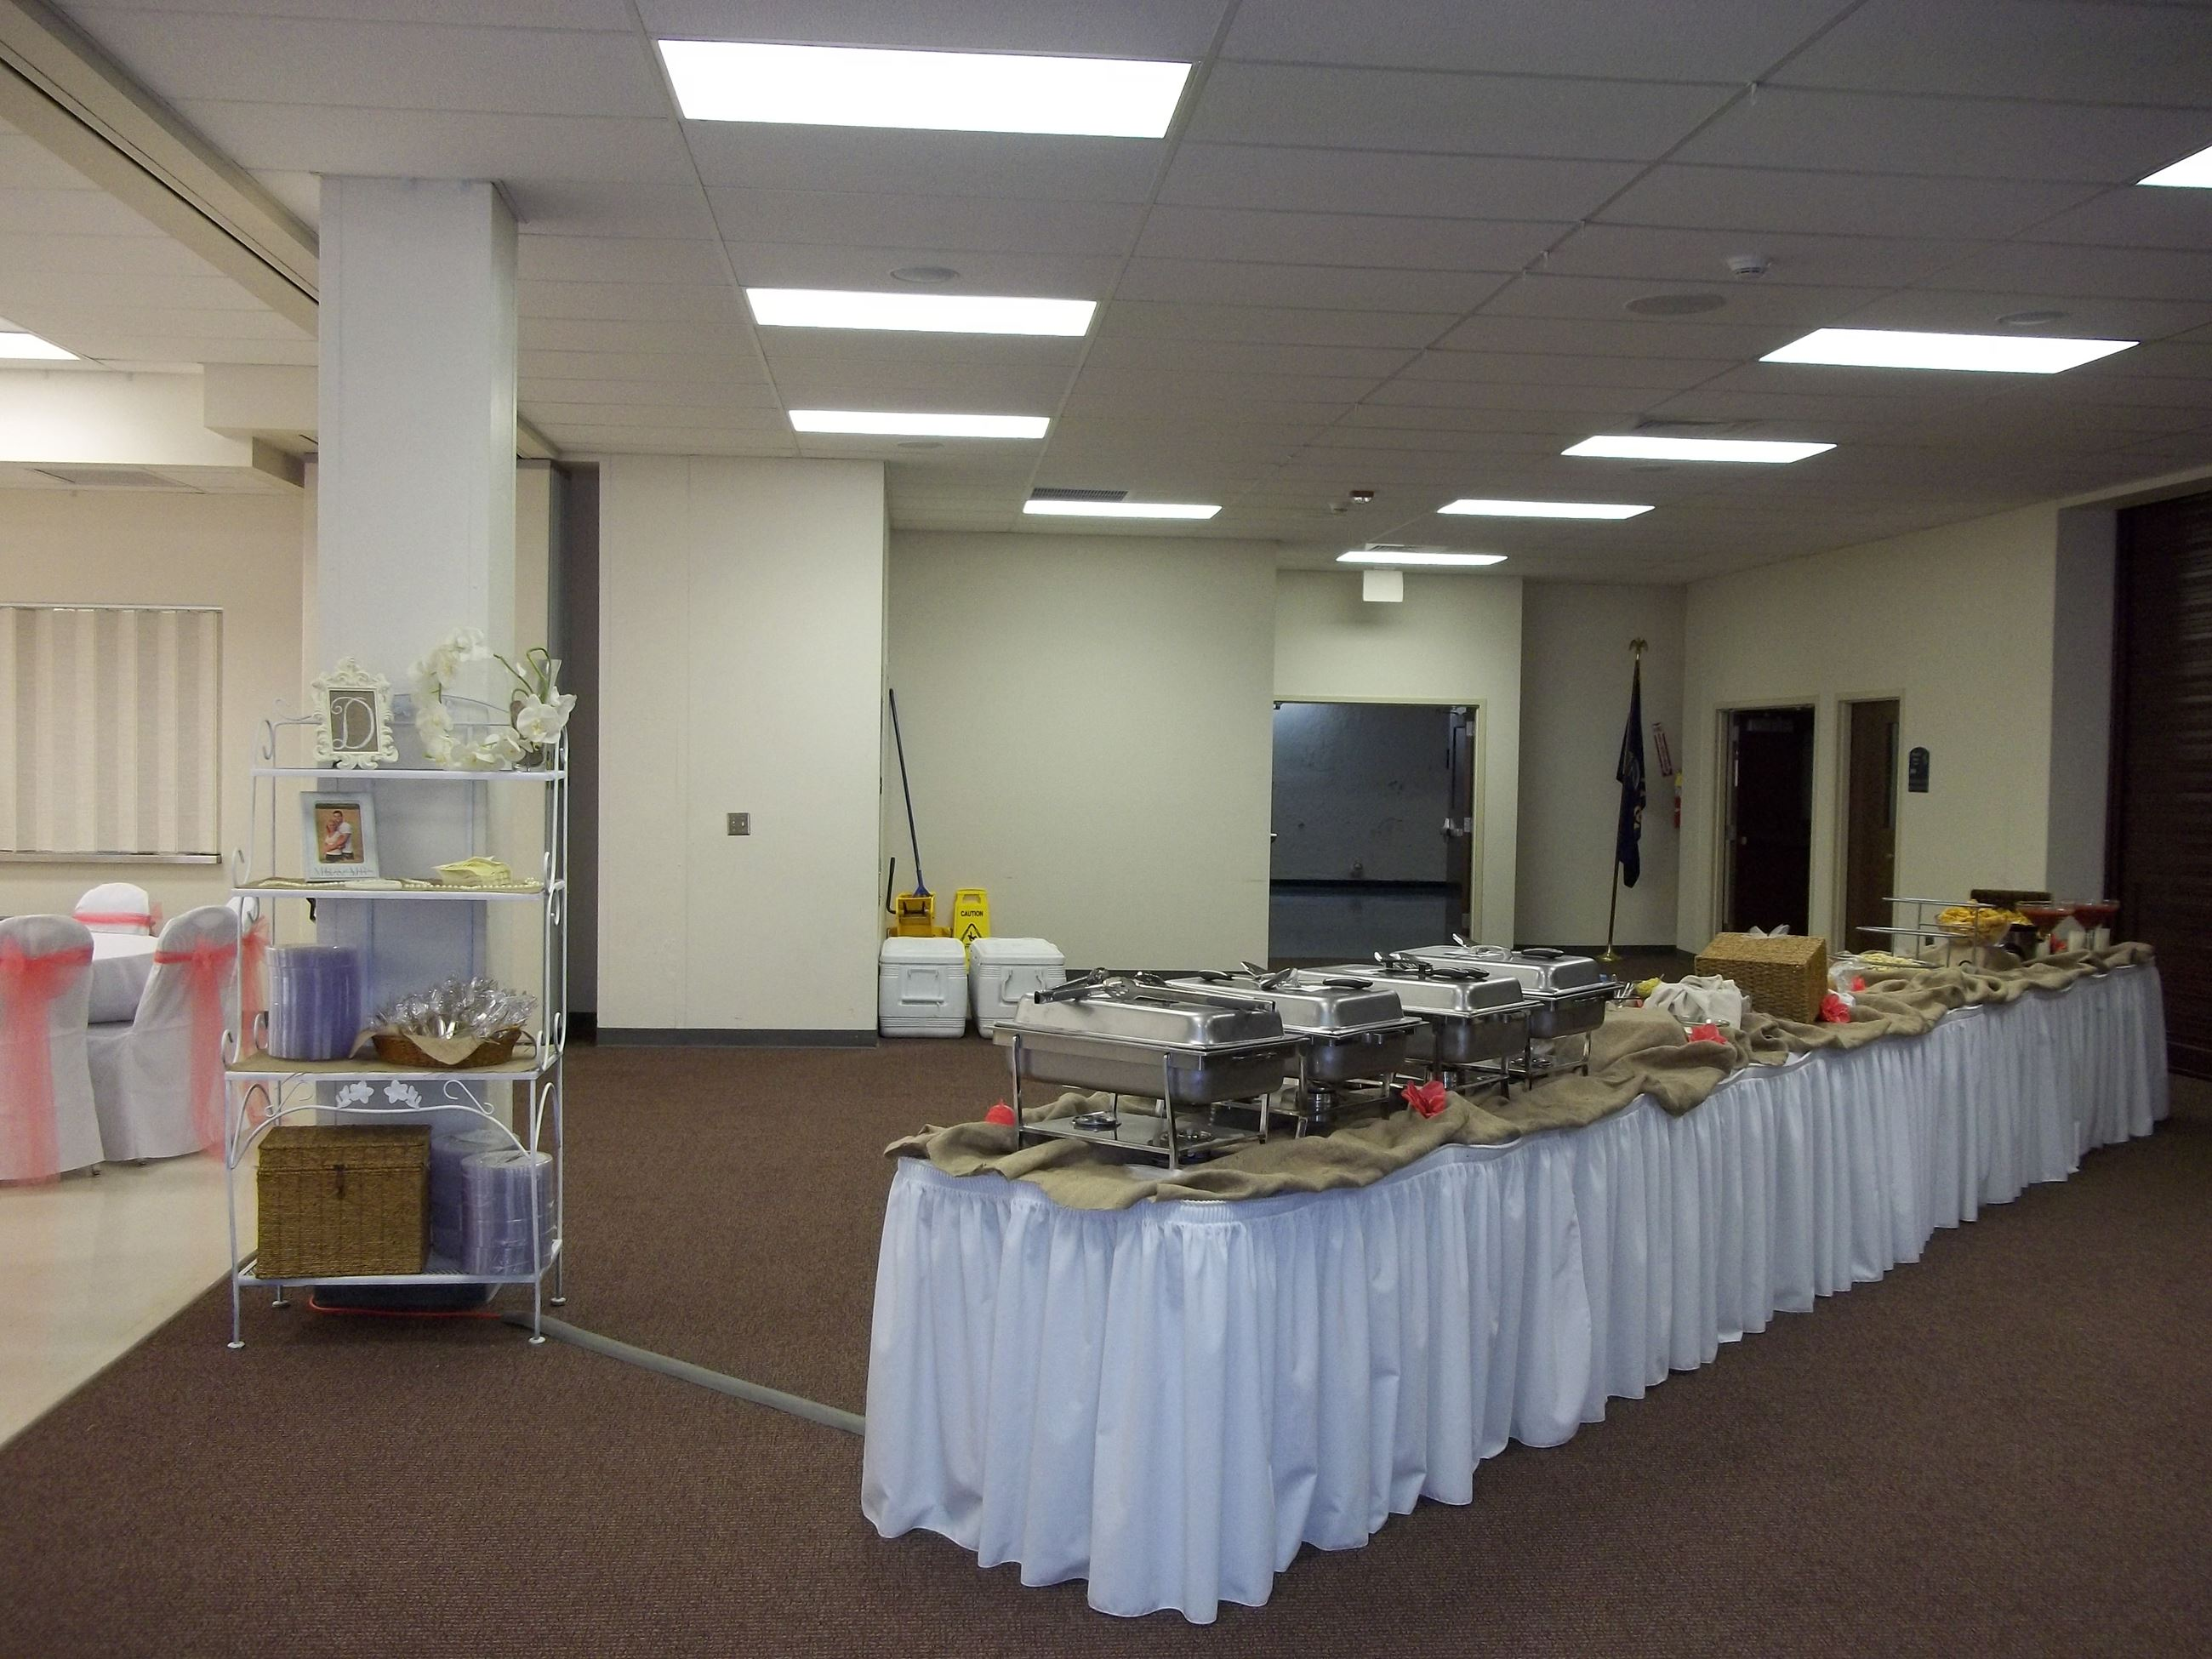 Buffet Line in Gallery